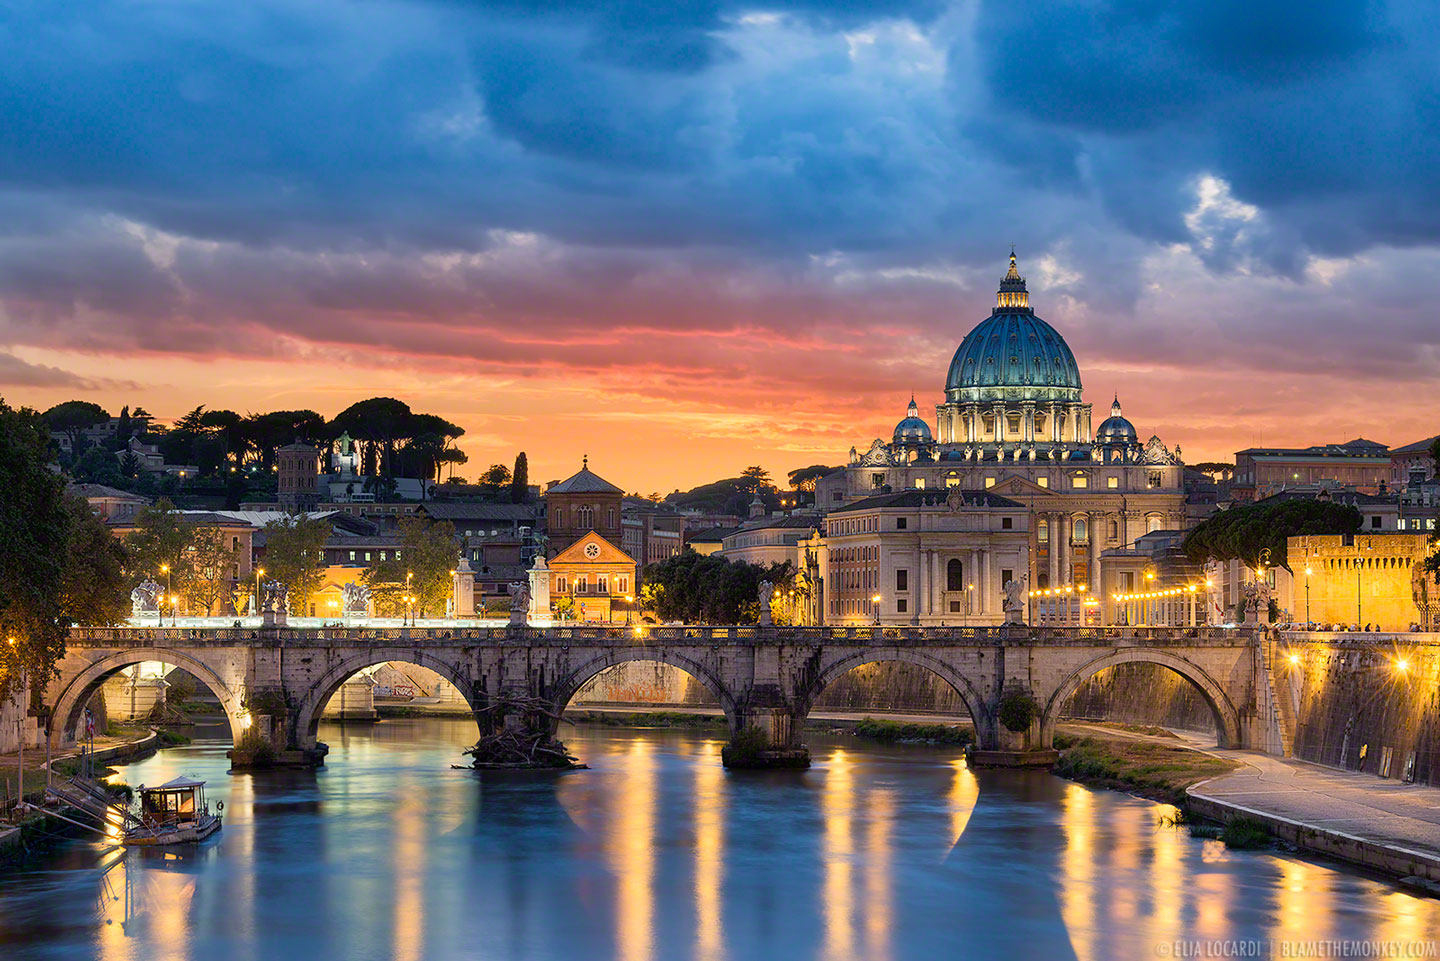 An incredible sunset etches St Peter's Basilica and the Vatican with a warm golden glow. Rome, Italy